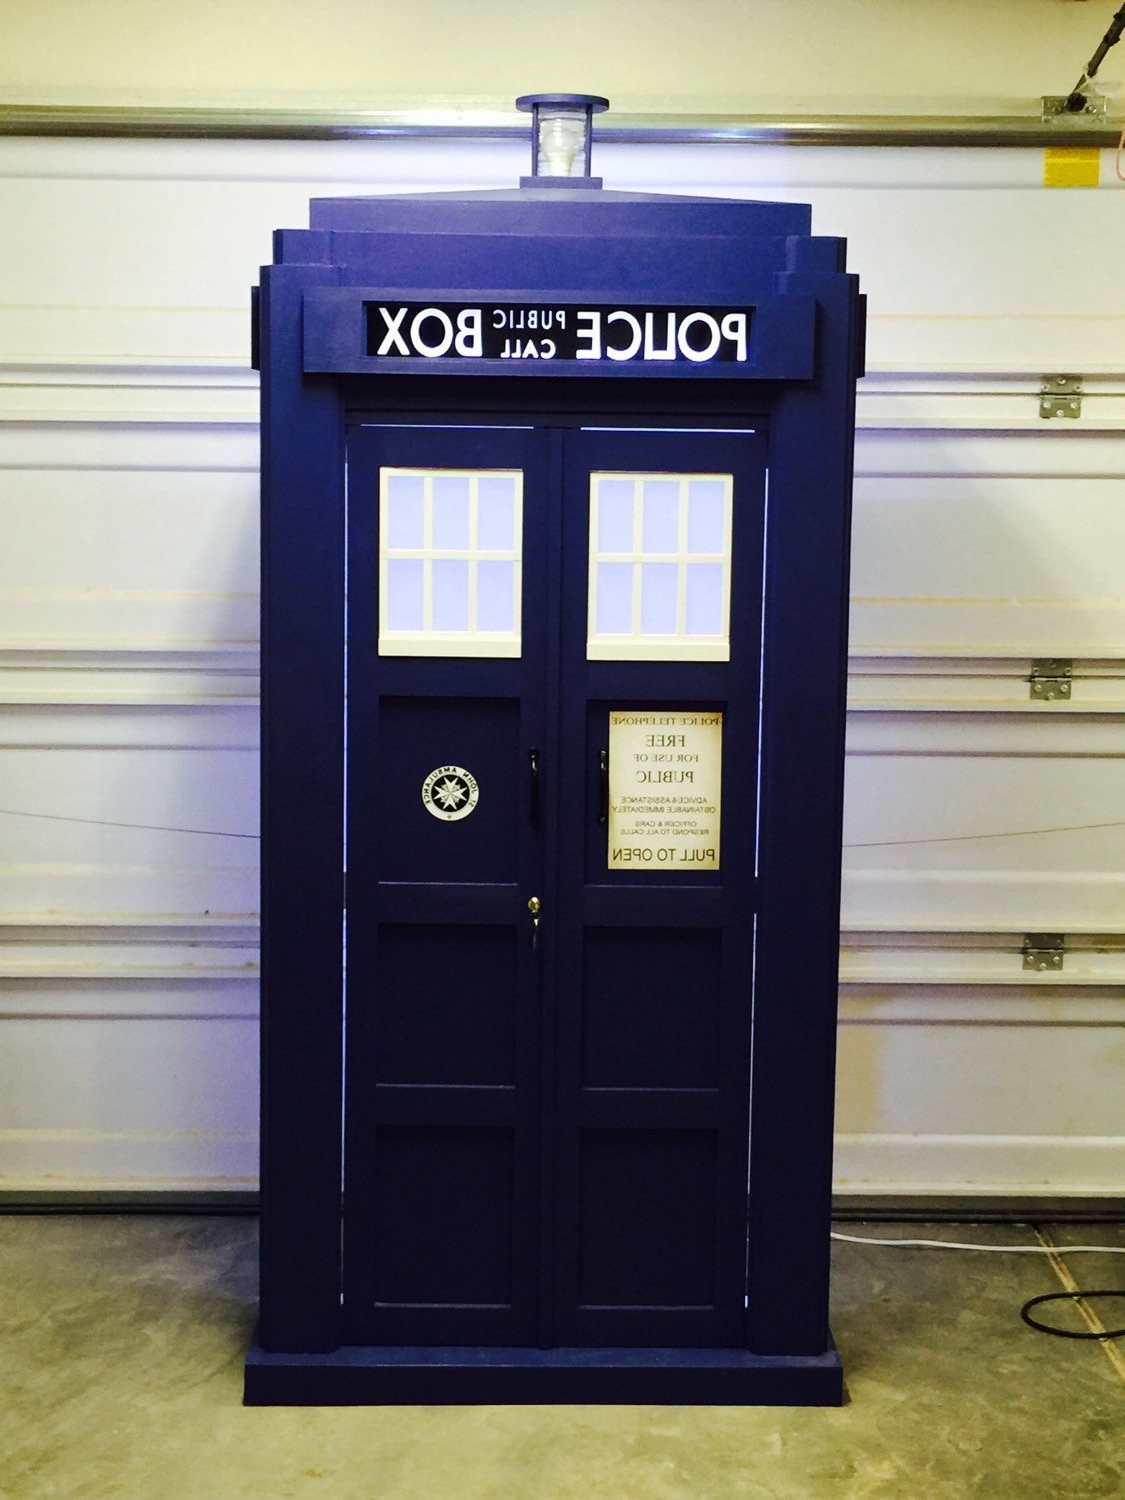 Tardis Bookcases In Well Known Blue Police Bookshelf 04 Tardis Bookcase 2017 Looking For Tardis (View 15 of 15)